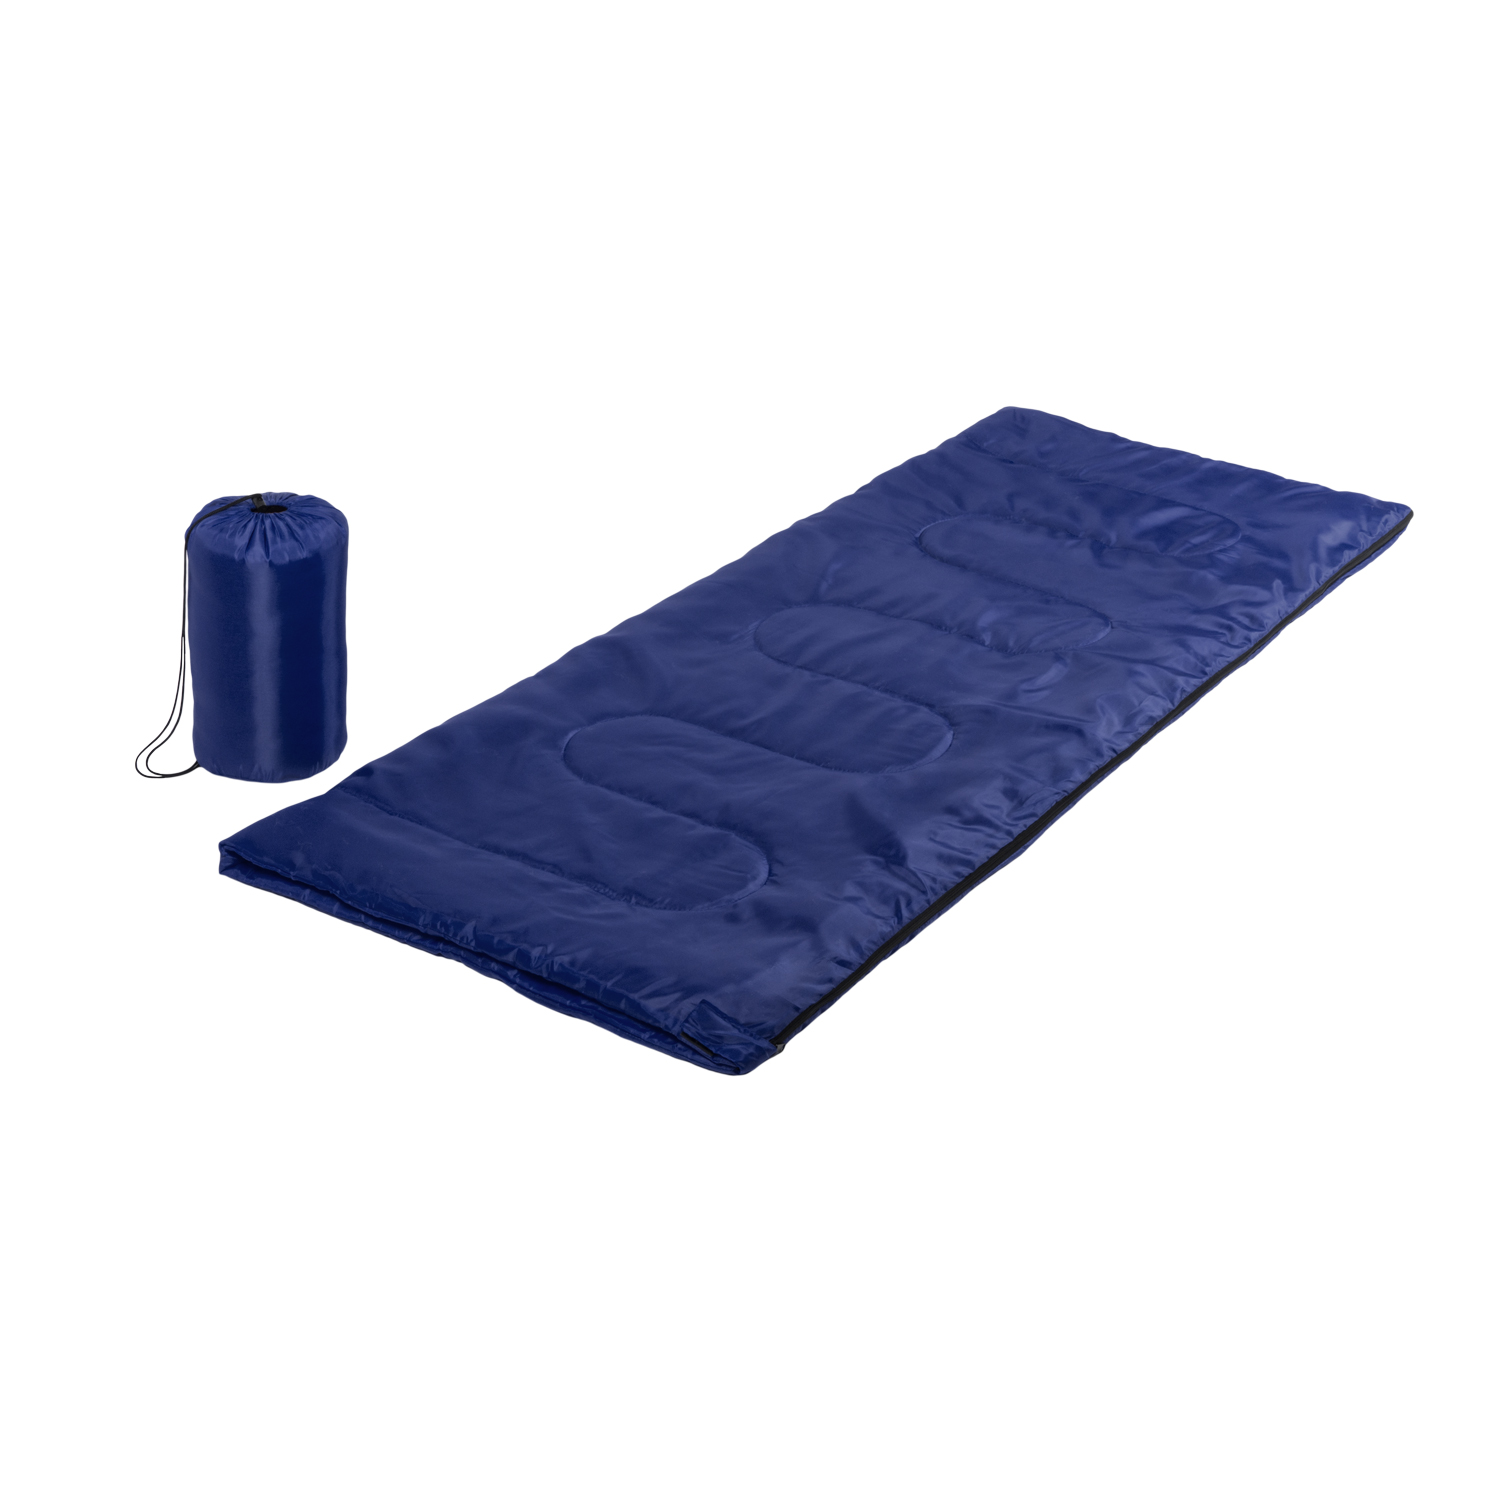 Sleeping Bag 012 - hmi14012-07 (Blue)